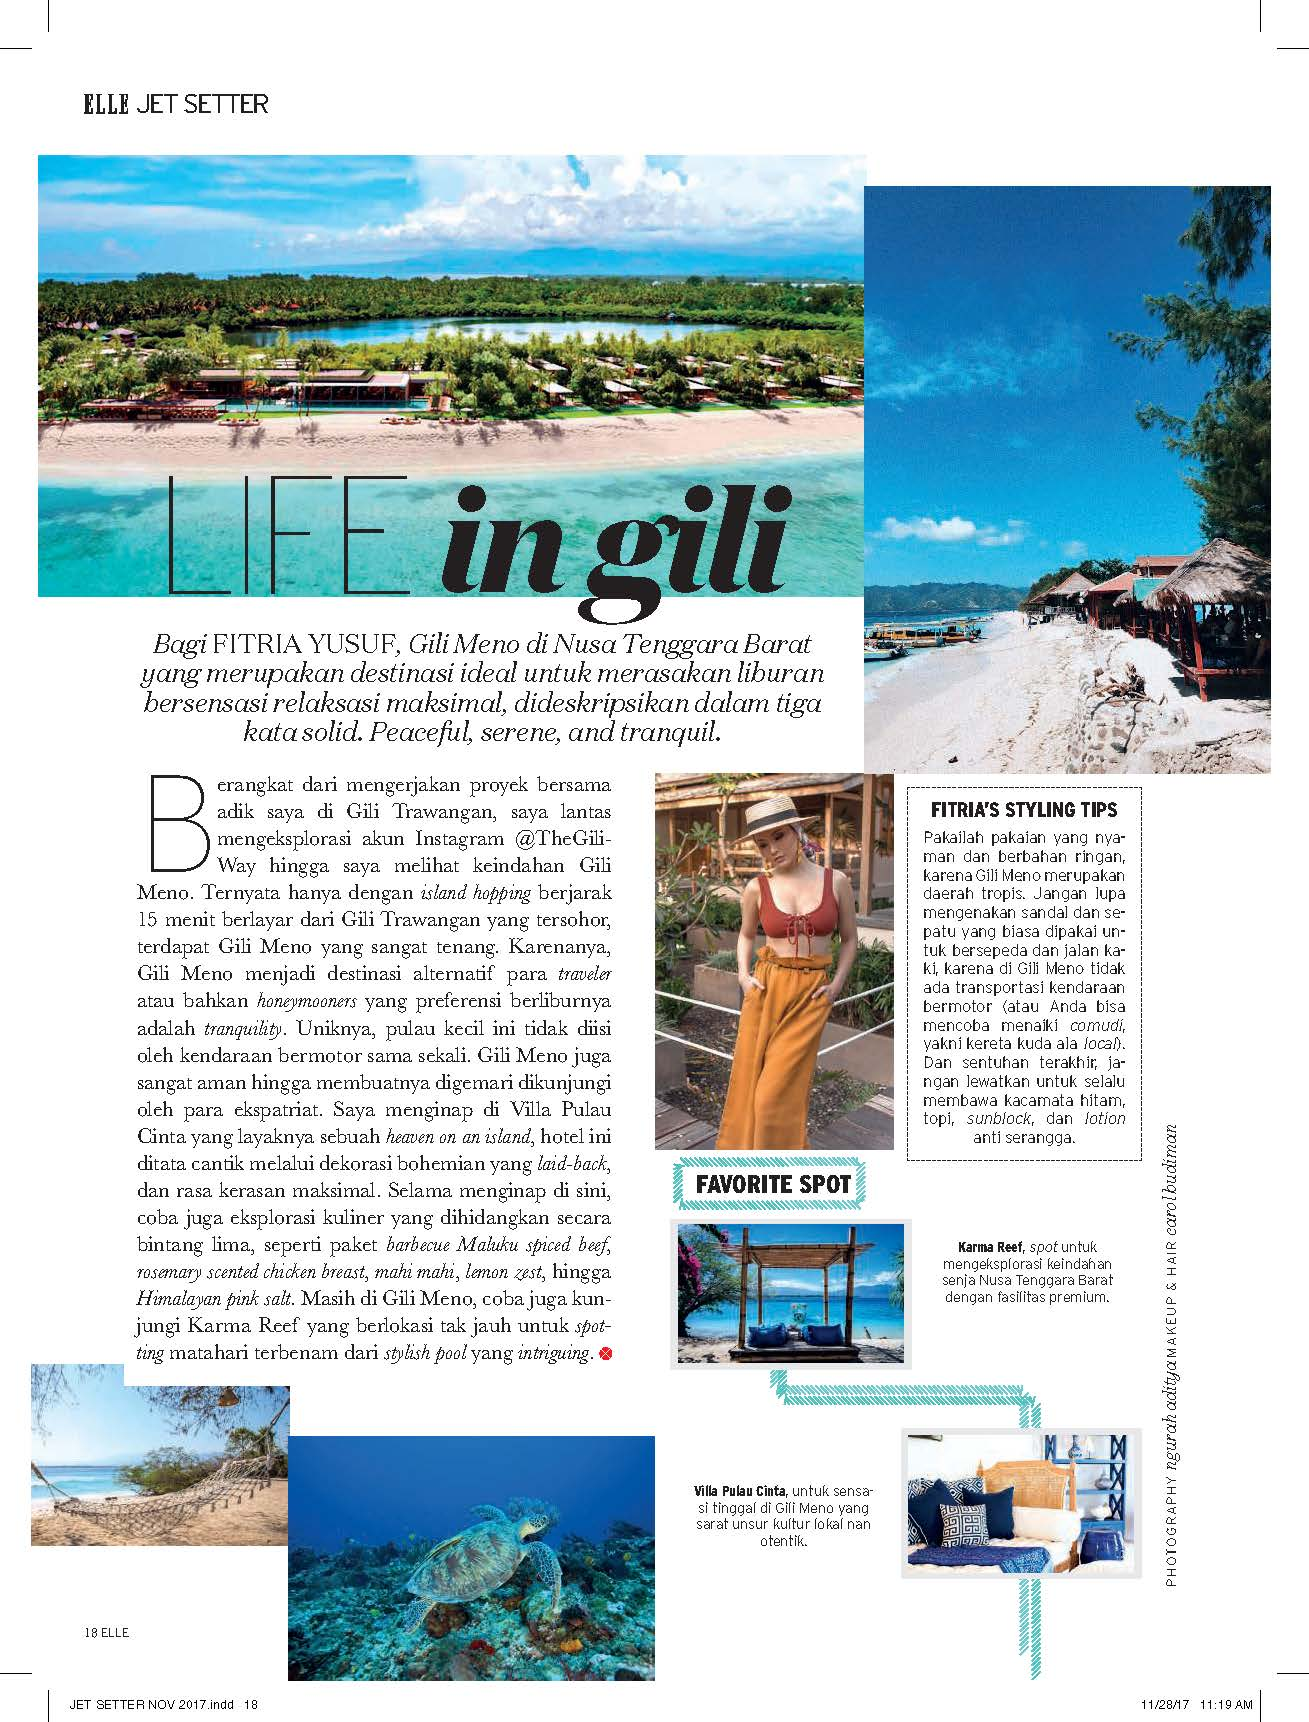 ELLE Indonesia Jet Setter November 2017